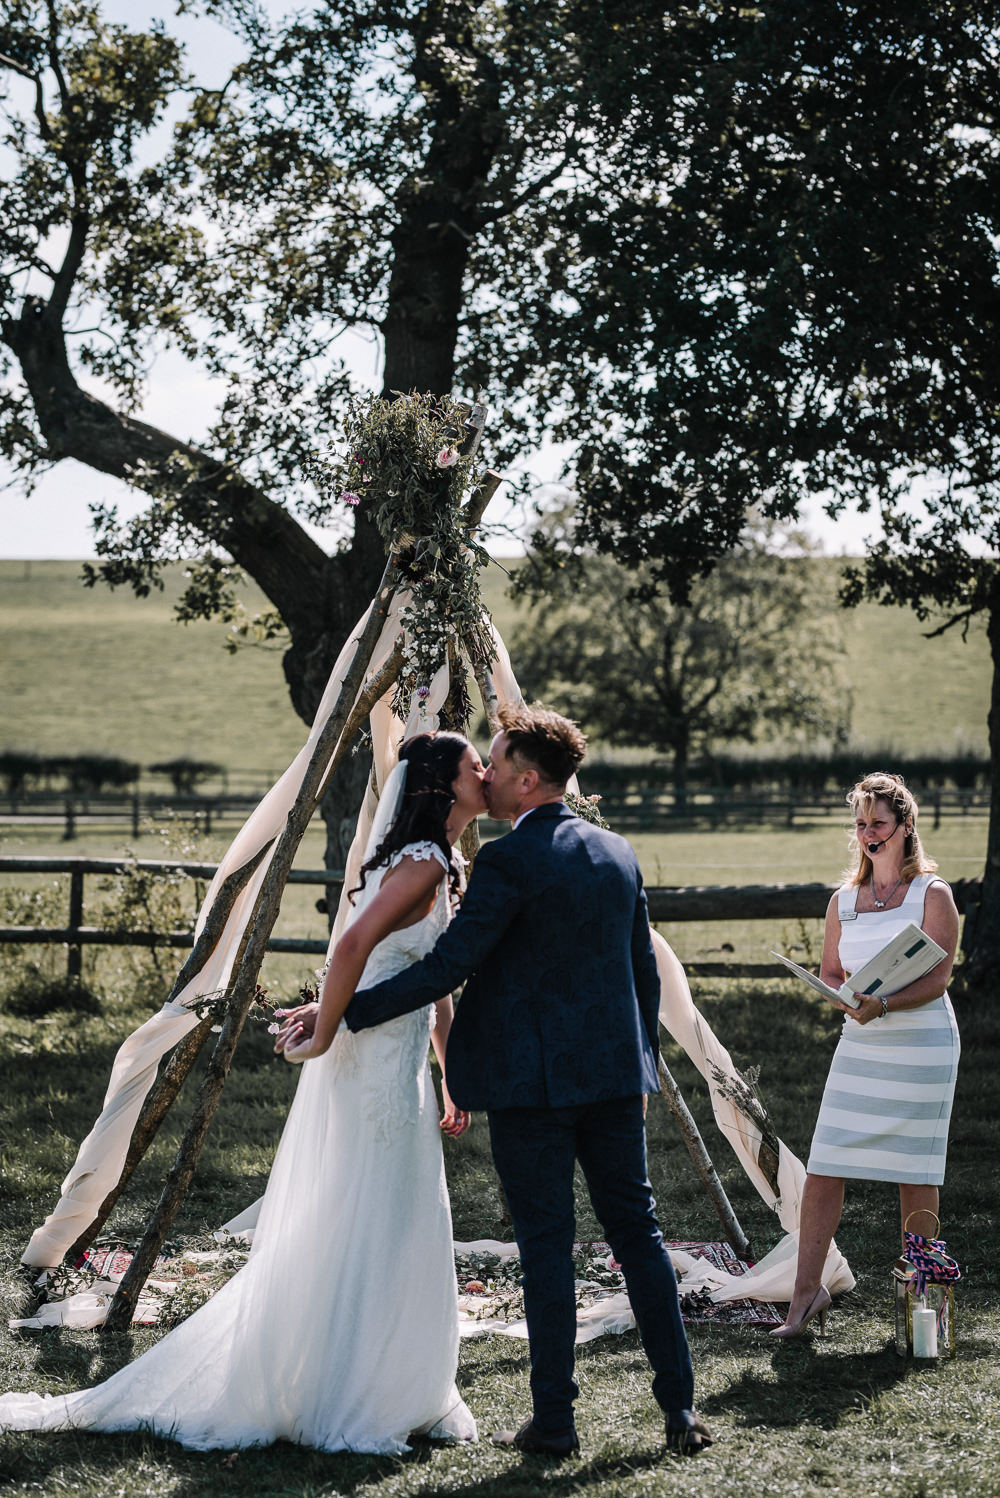 Ceremony Naked Tipi Backdrop Wooden Alcott Weddings Oobaloos Photography